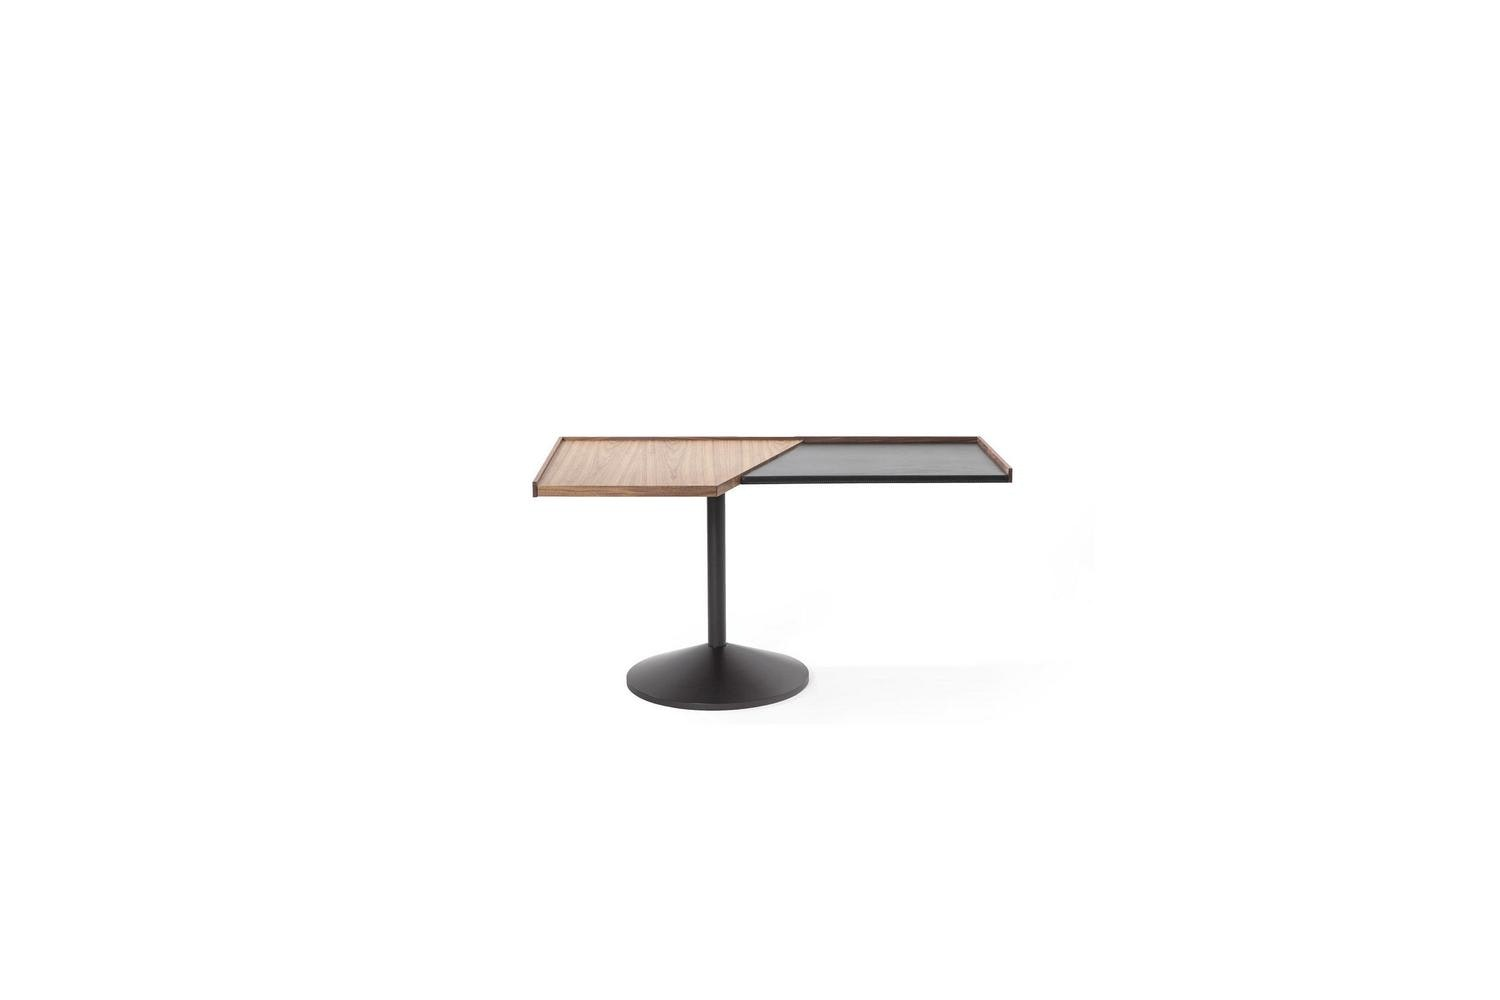 840 Stadera Writing Desk by Franco Albini for Cassina